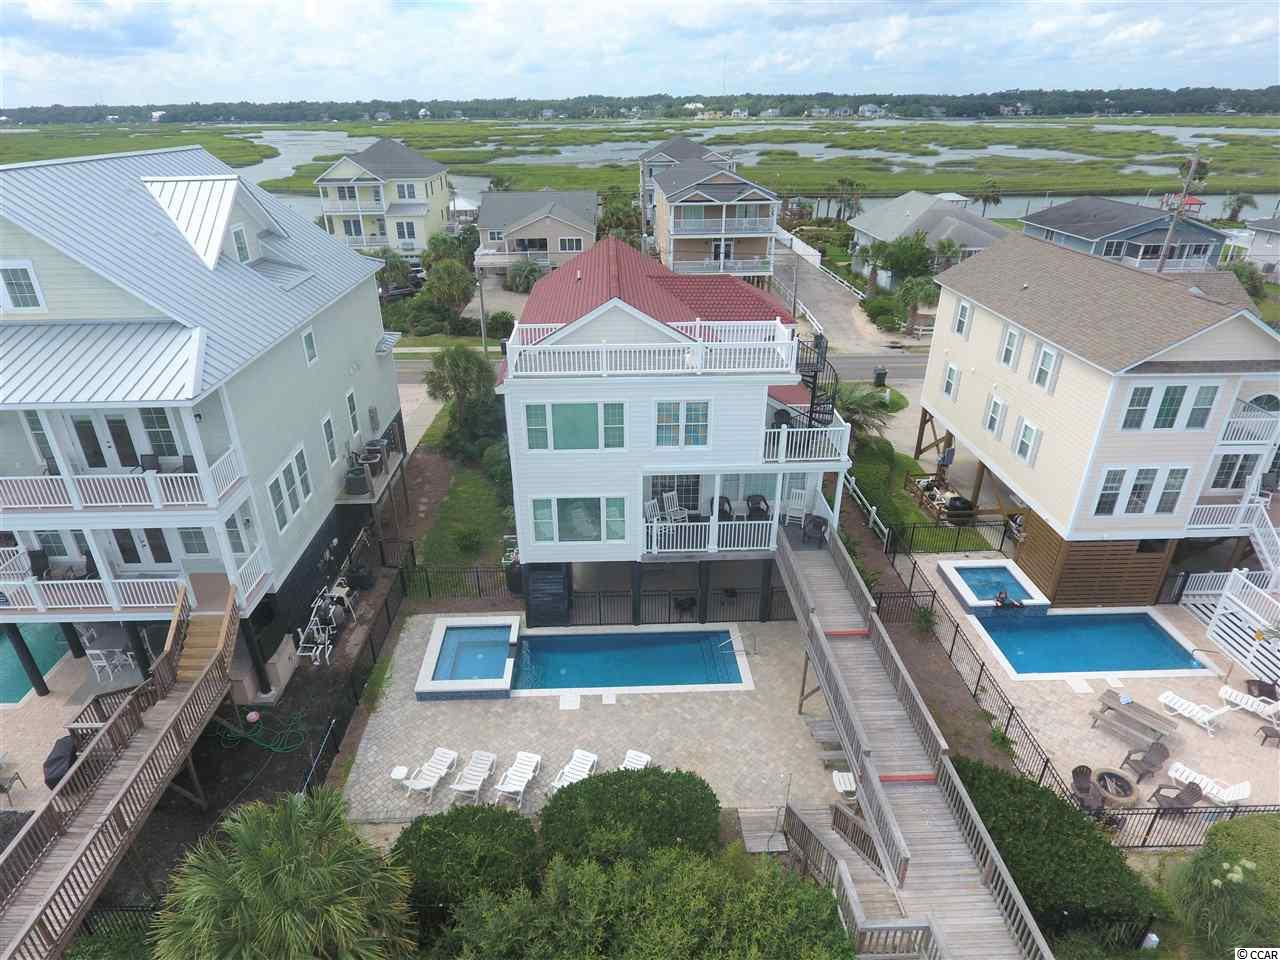 """Get """"Unplugged,"""" relax and enjoy the beach!  1049 South Waccamaw Drive is located just over 1 mile South of the Garden City Pier.  This beach home features 5-bedrooms, 5 full bathrooms, which includes two oceanfront master bedrooms, a large private heated pool and roof top """"crows nest"""" which boasts amazing panoramic views of the ocean, beach and creeks of Murrells Inlet.  All the amenities listed above give this property an excellent rental history!  Contact the listing agent, or your Realtor, for rental information or to schedule a private showing.  To see the 3-D Matterport Virtual Tour, click the following link: https://my.matterport.com/show/?m=9wBW2THsdmG&brand=0"""